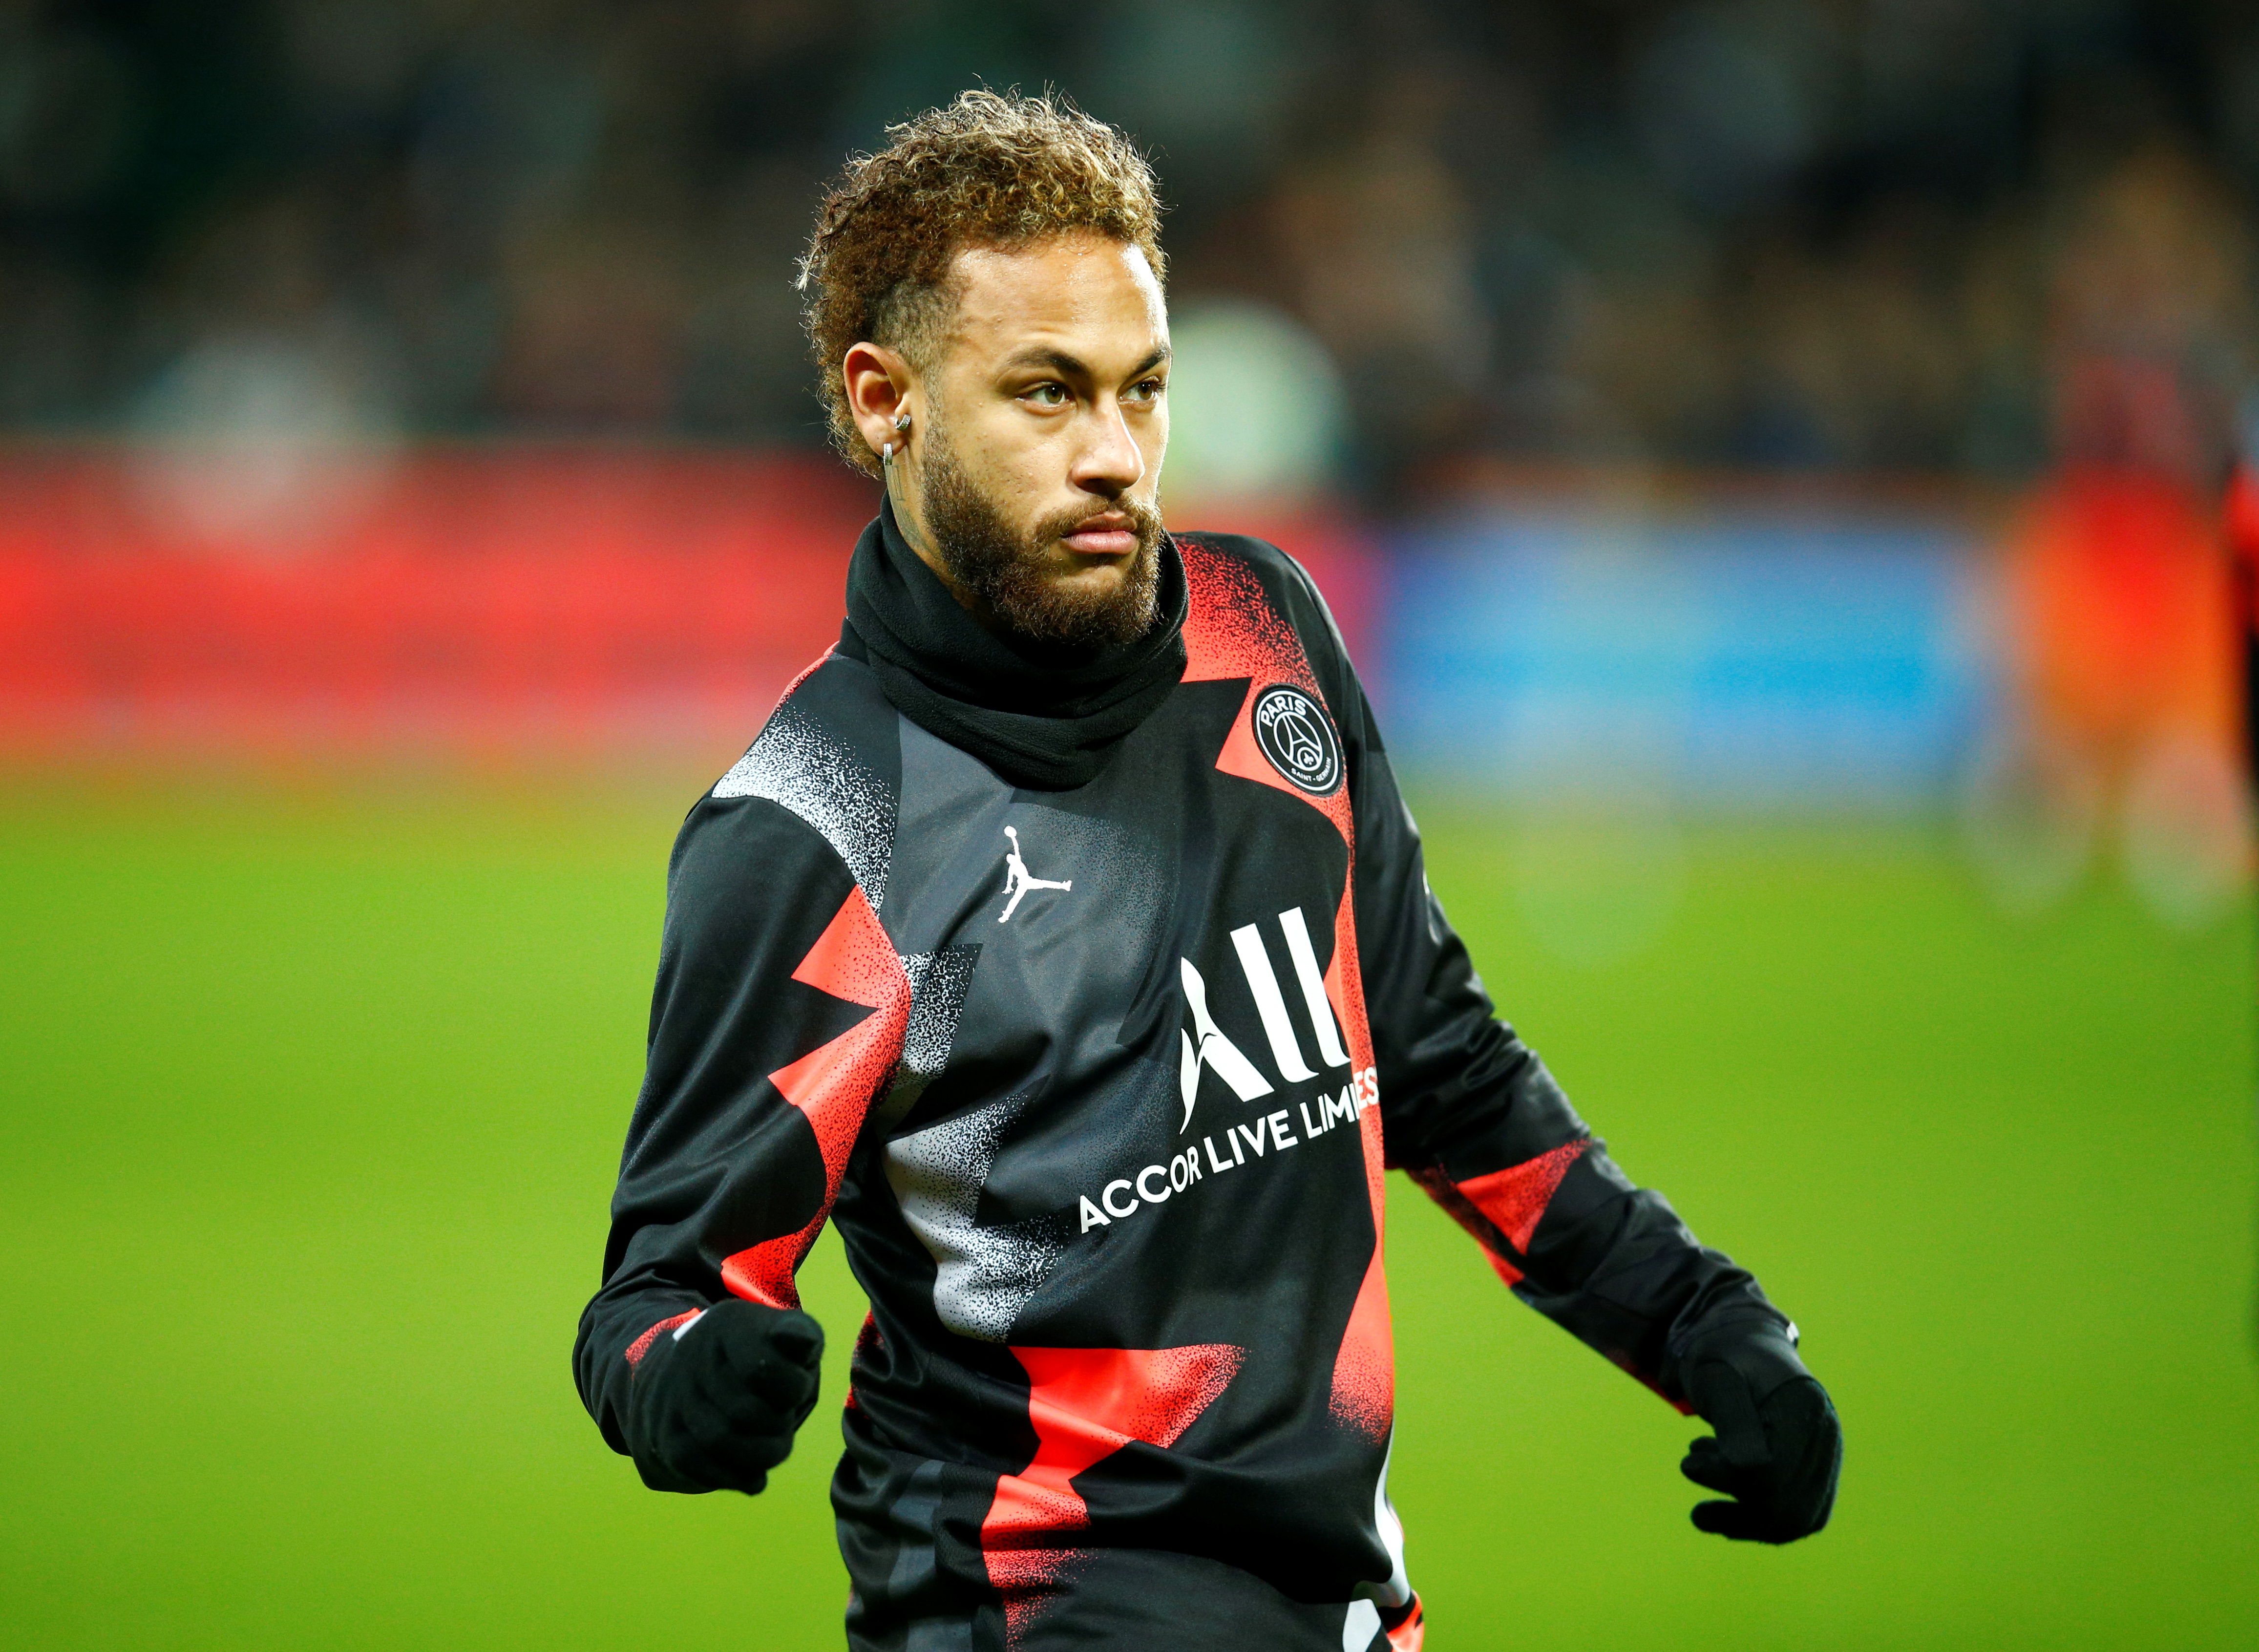 Neymar back to Barcelona - Is that a possibility?